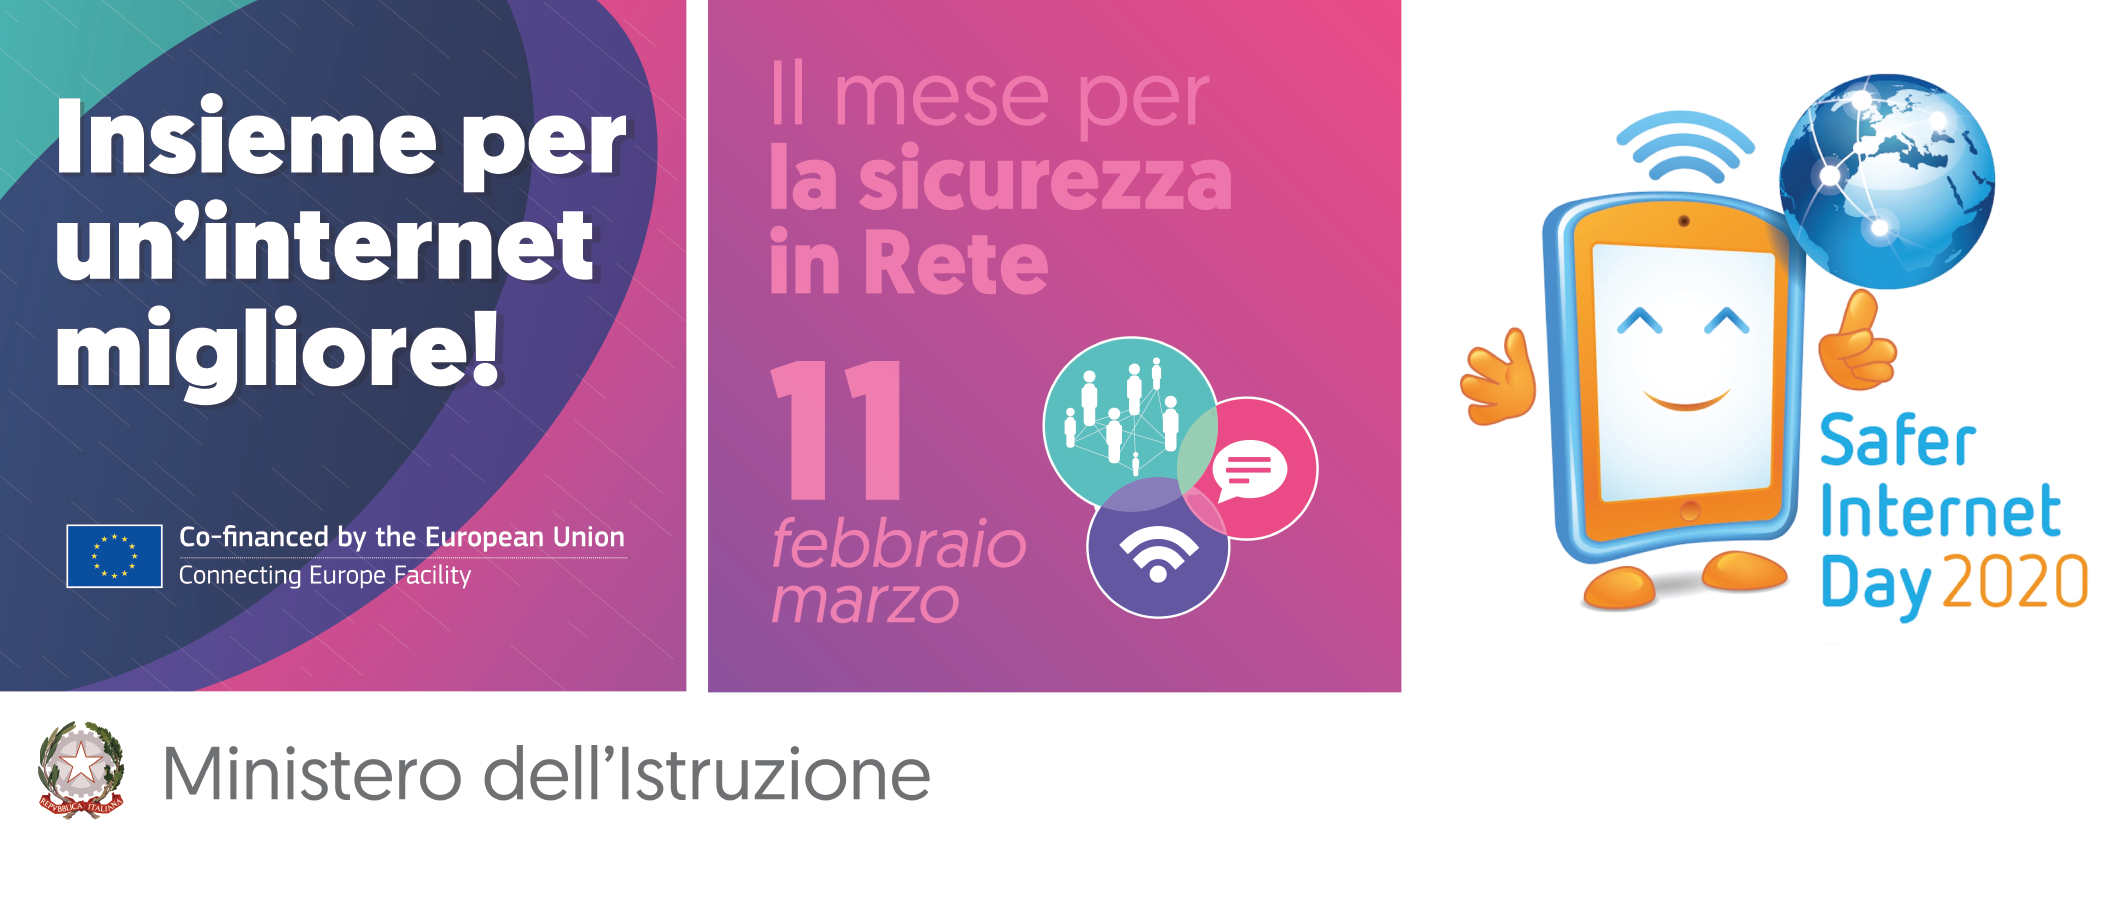 Together for a better internet: Safer Internet Day 2020 - 11 febbraio 2020